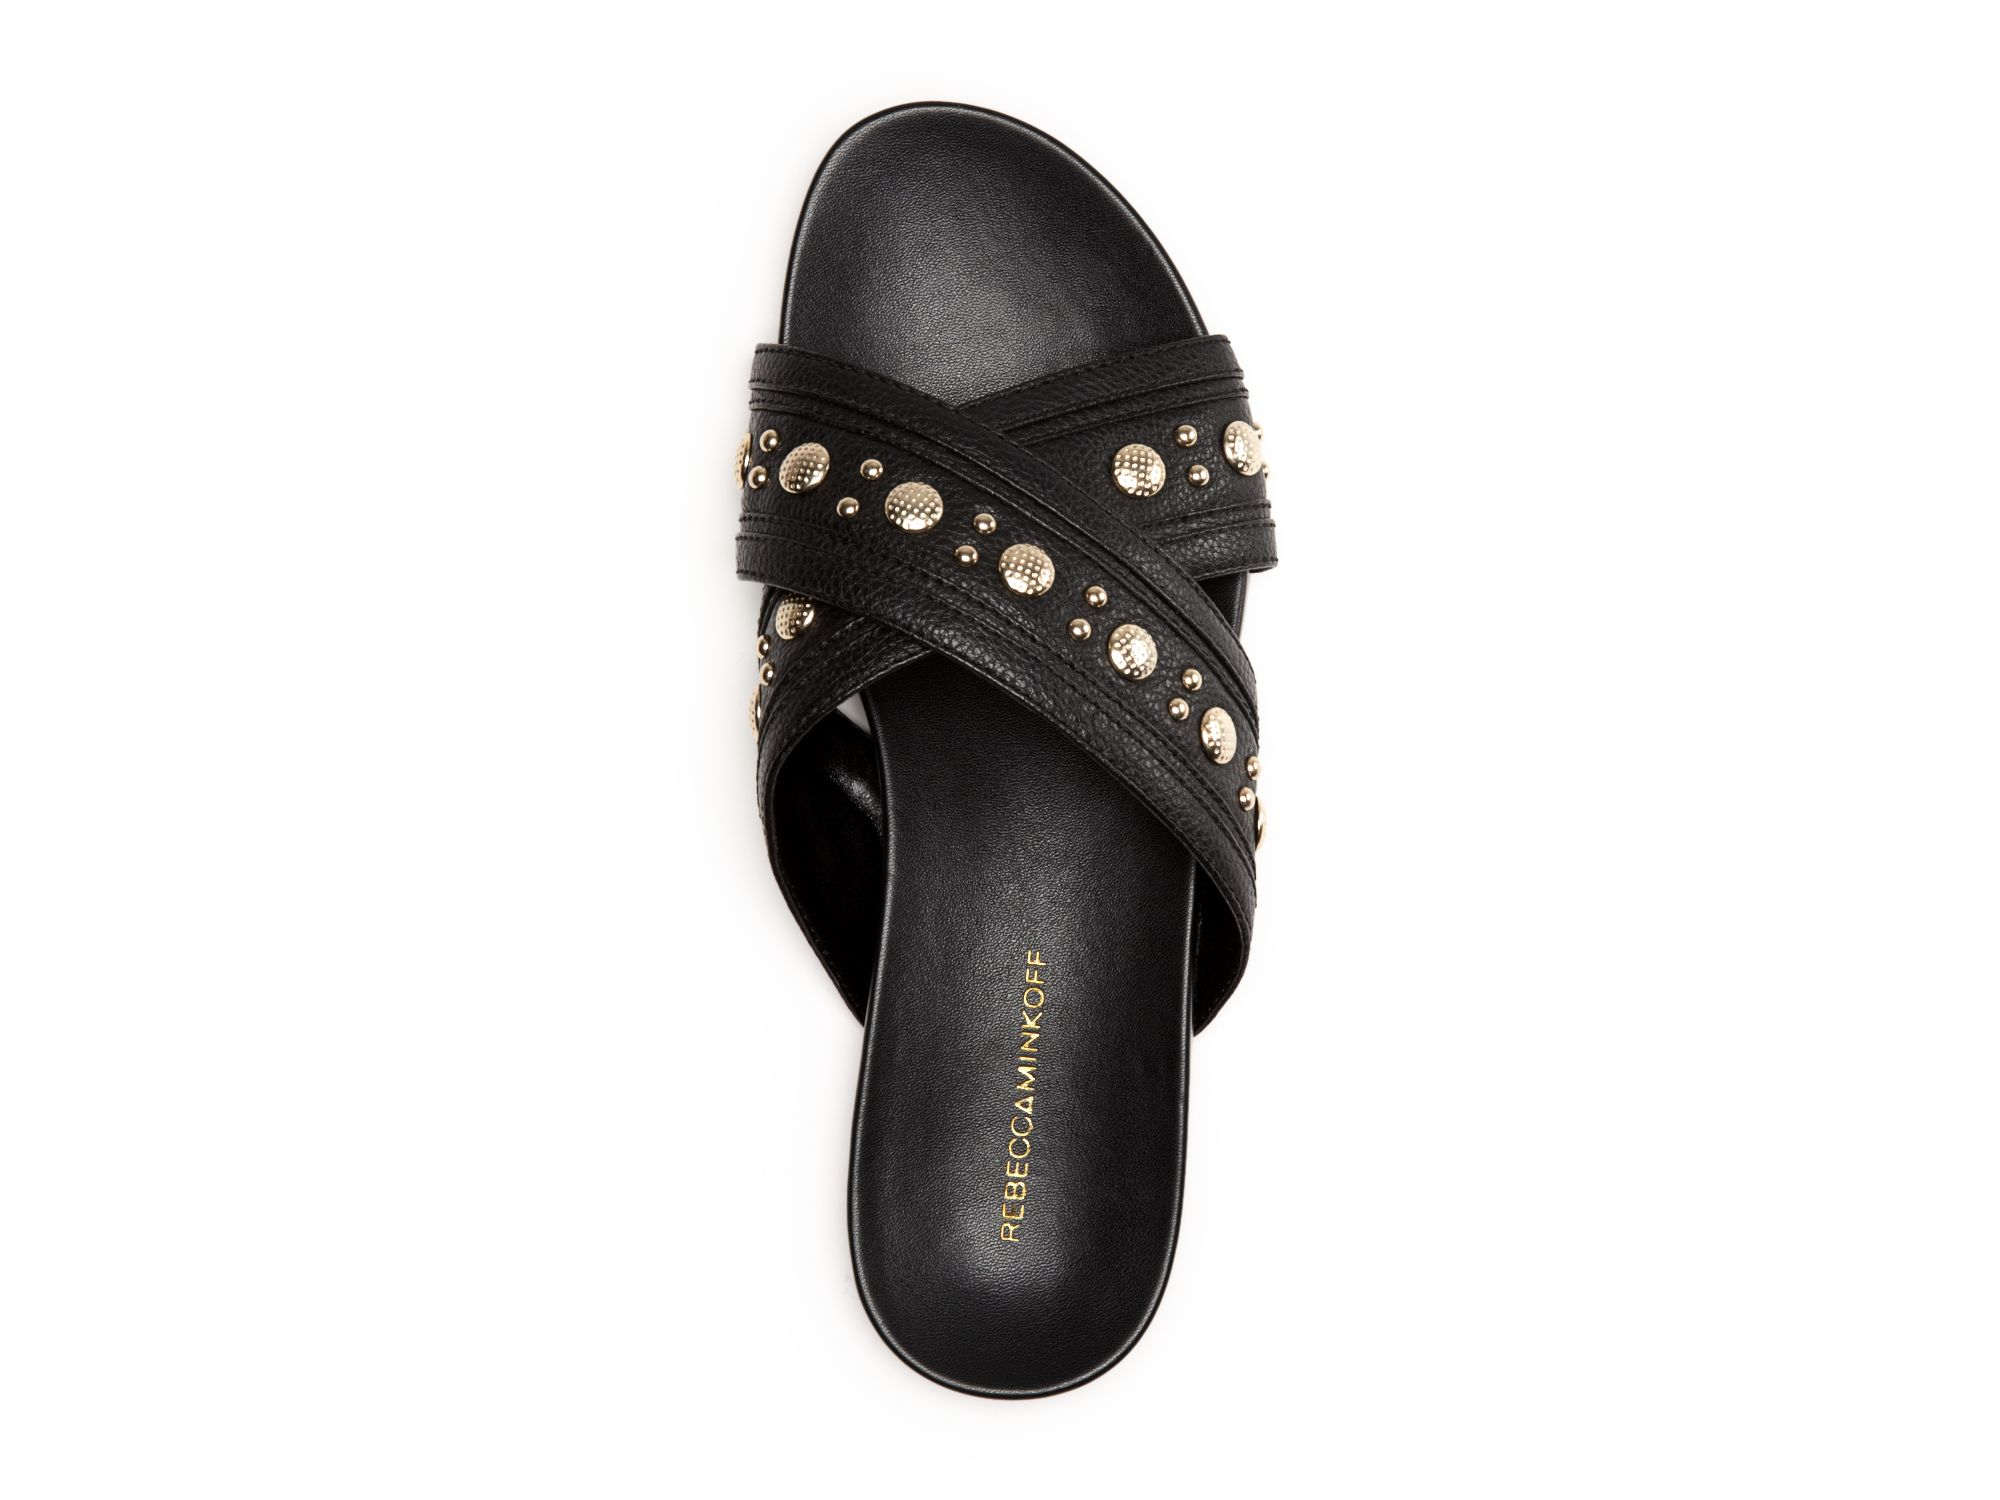 1950fcc95f3 Rebecca Minkoff Black Flat Slide Slip On Sandals - Tori Studded